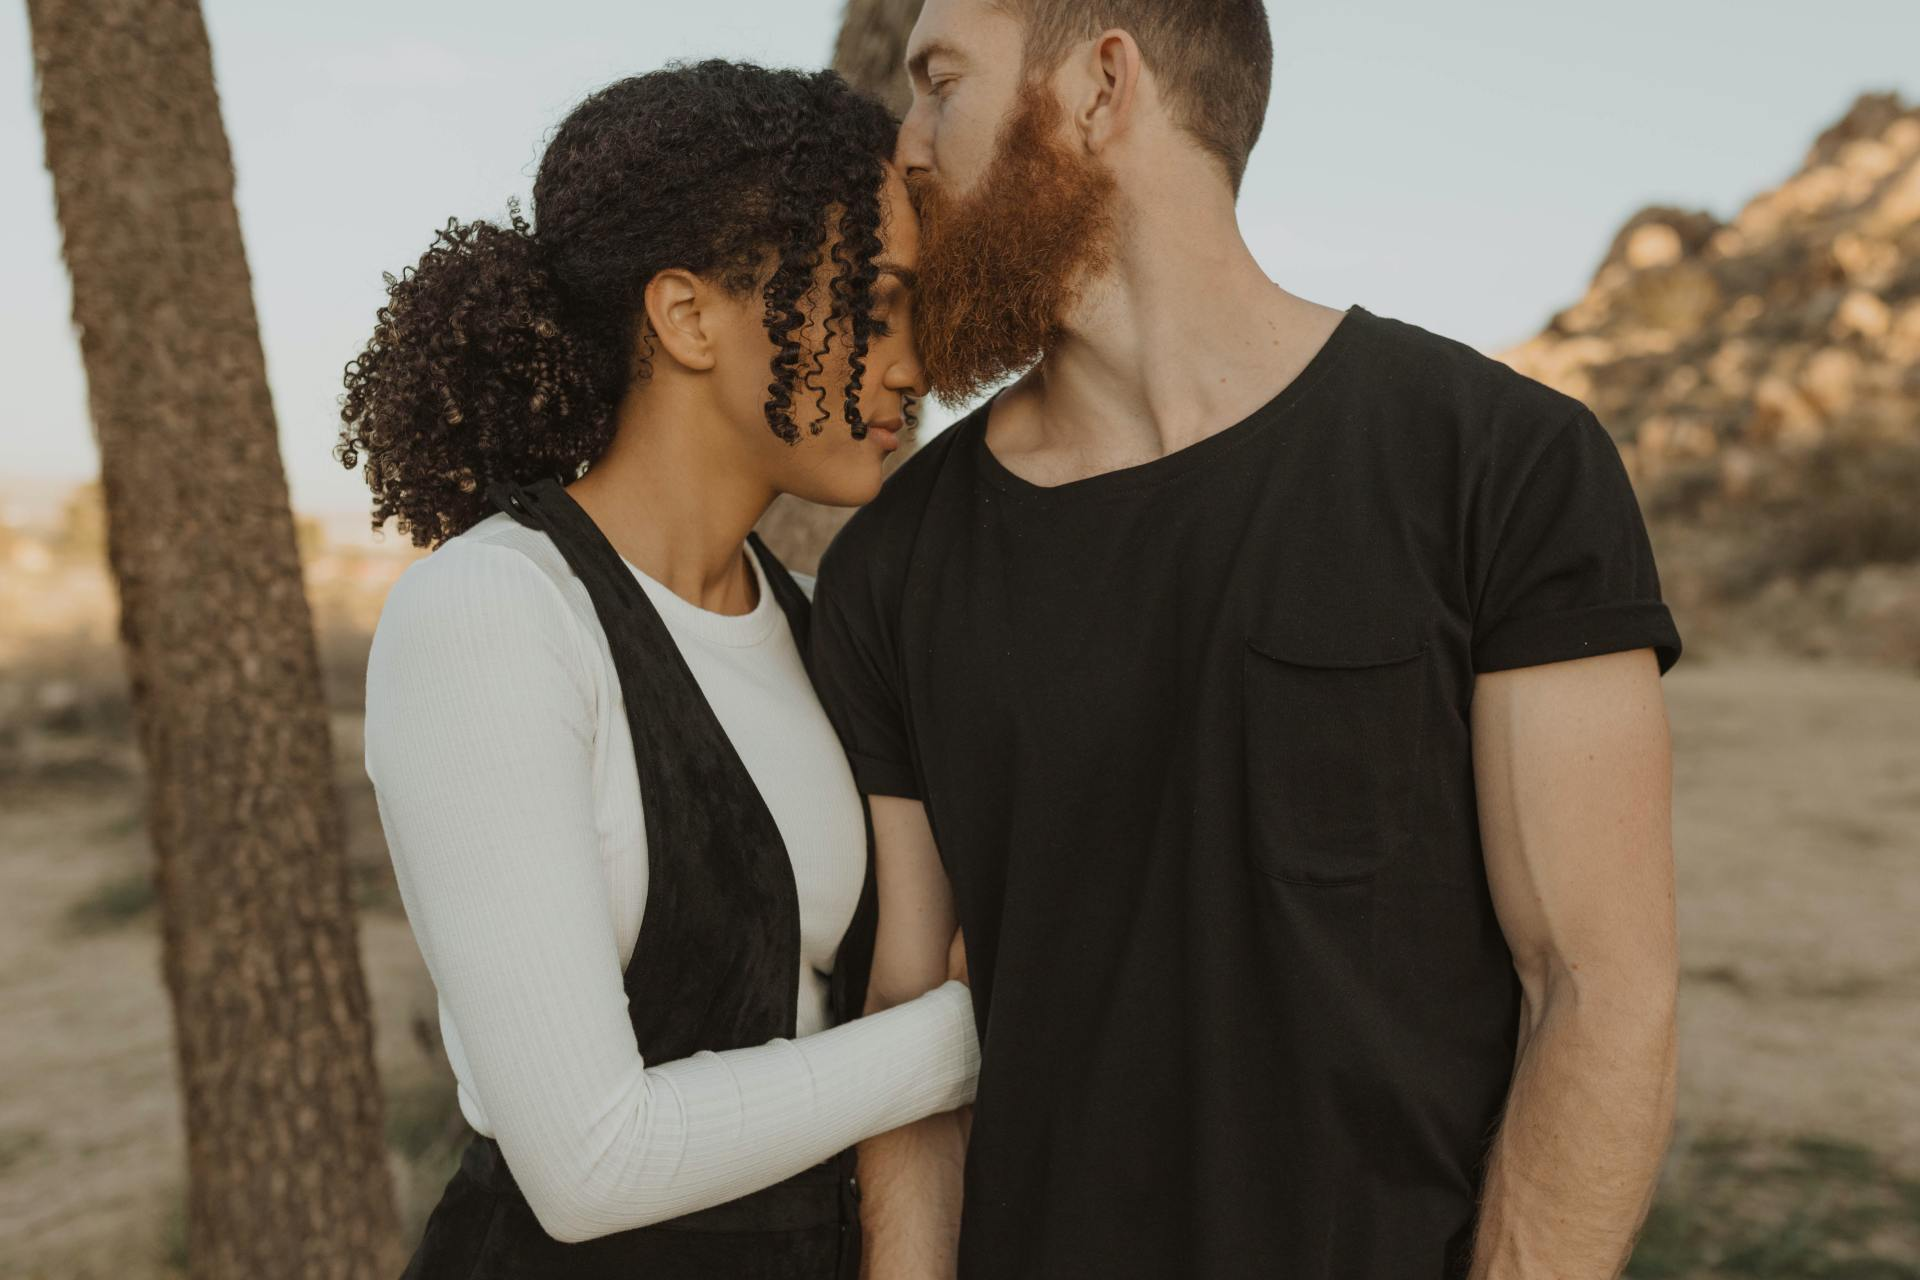 30 Small, Thoughtful Things Girls Want Their Boyfriends To Start Doing